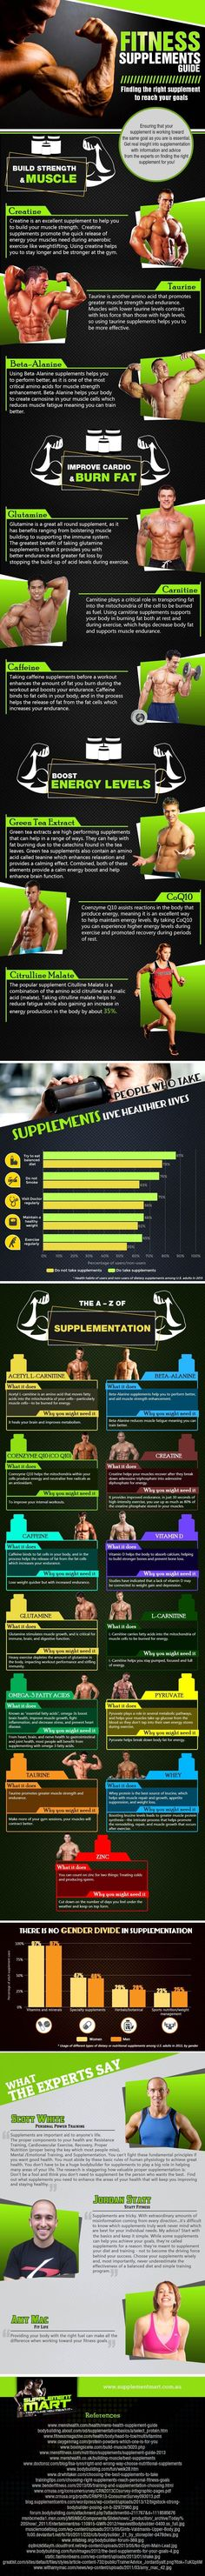 The Ultimate Fitness Supplements Guide [Infographic] - http://lifeofmen.com/ultimate-fitness-supplements-guide-infographic/